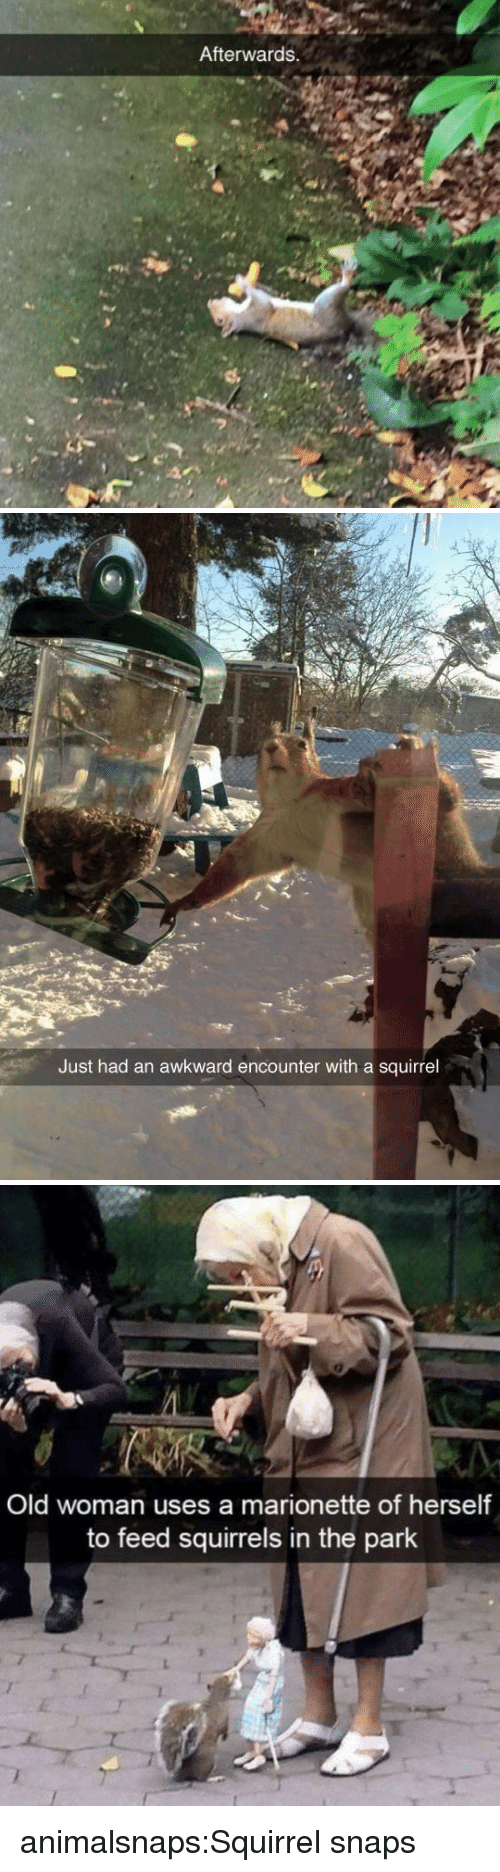 Old Woman, Target, and Tumblr: Afterwards.   Just had an awkward encounter with a squirrel   Old woman uses a marionette of herself  to feed squirrels in the park animalsnaps:Squirrel snaps